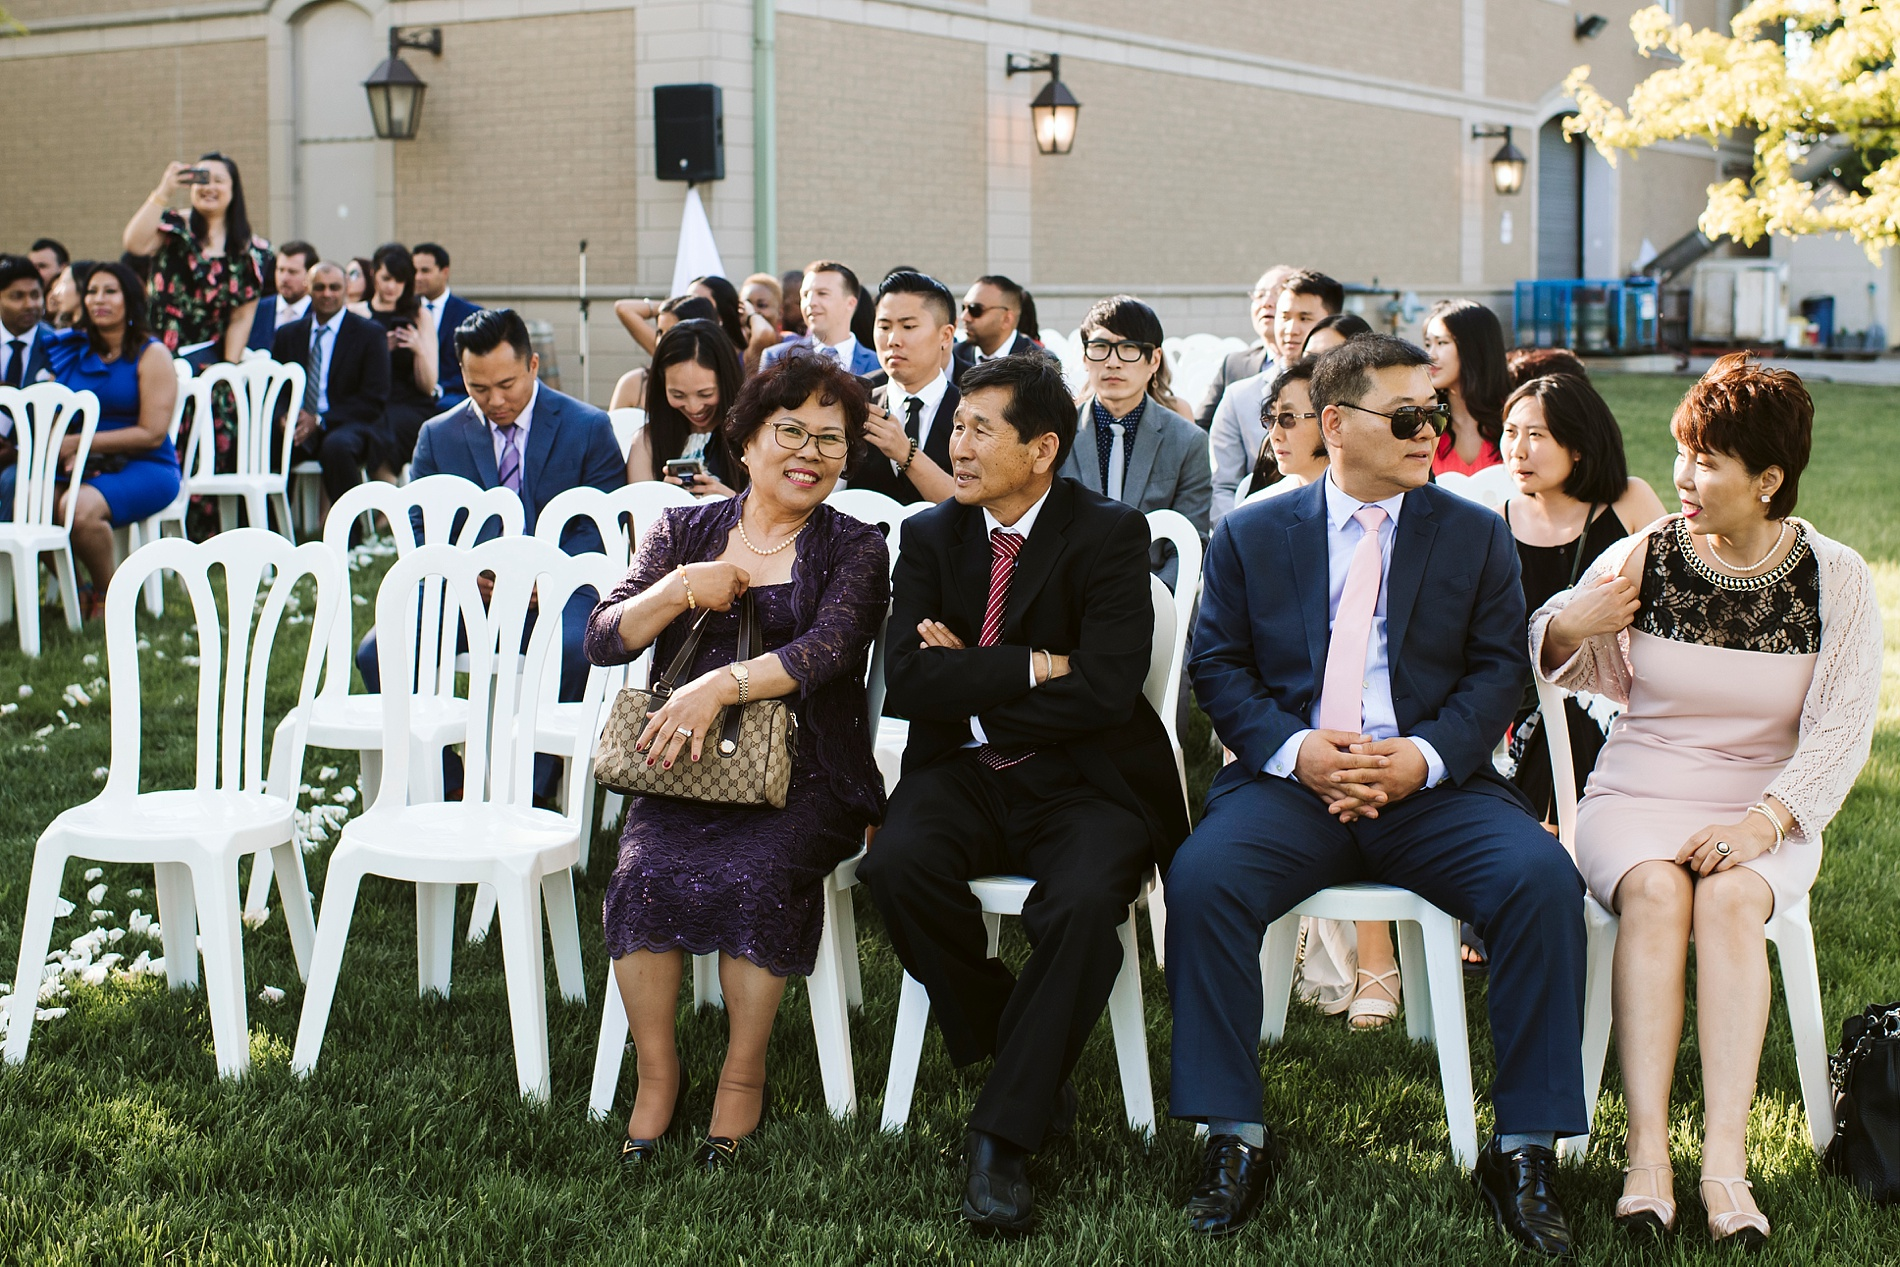 Best_Toronto_Wedding_Photographer_Niagara_Chateaux_des_Charmes_0035.jpg